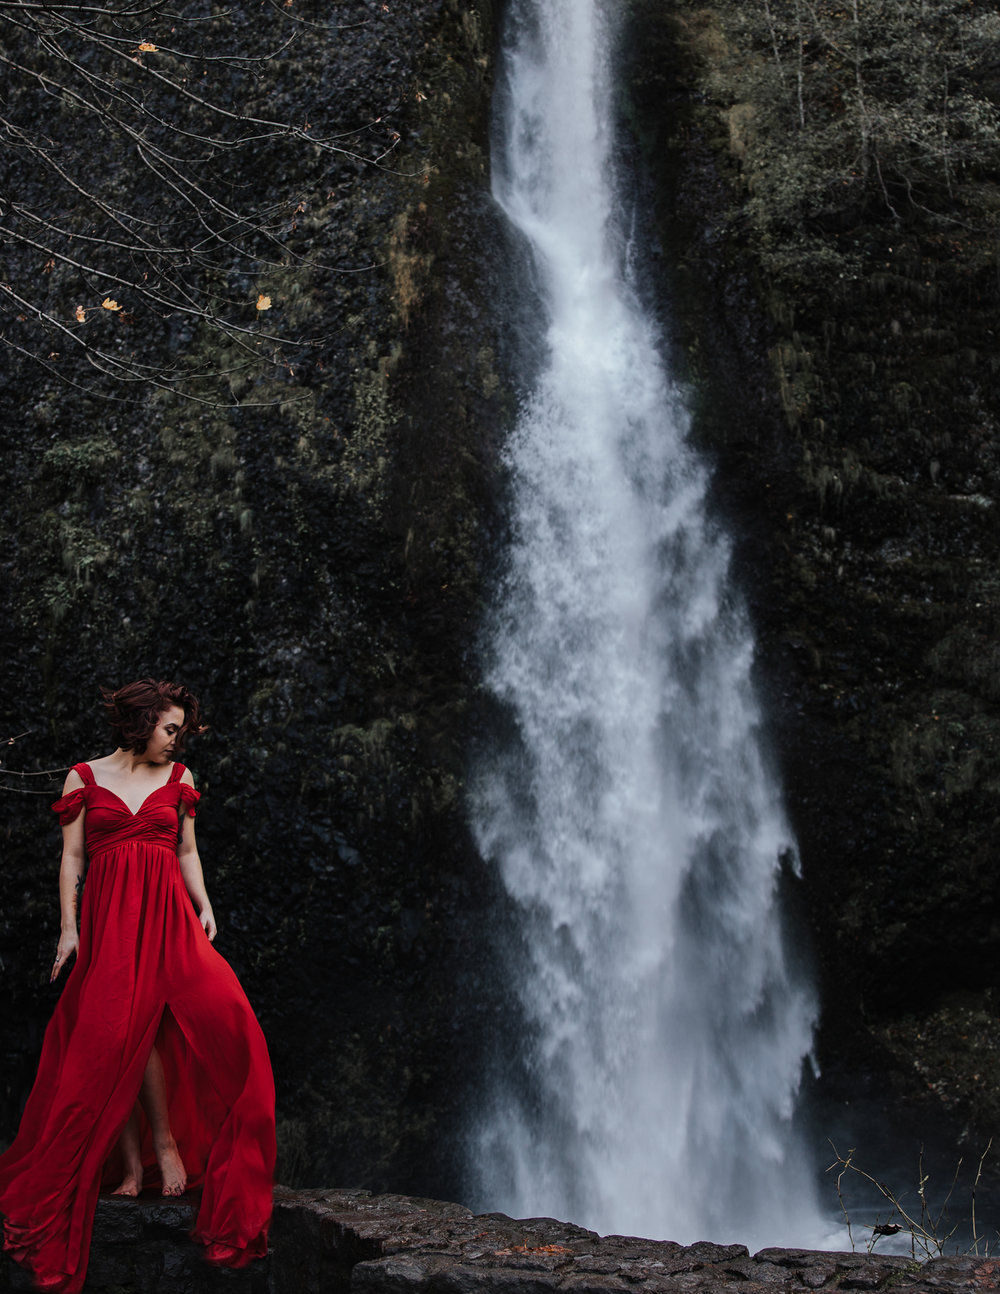 Babe in red dress by waterfall, Adventurous Outdoor + Waterfall Couples Session | Croative Photography